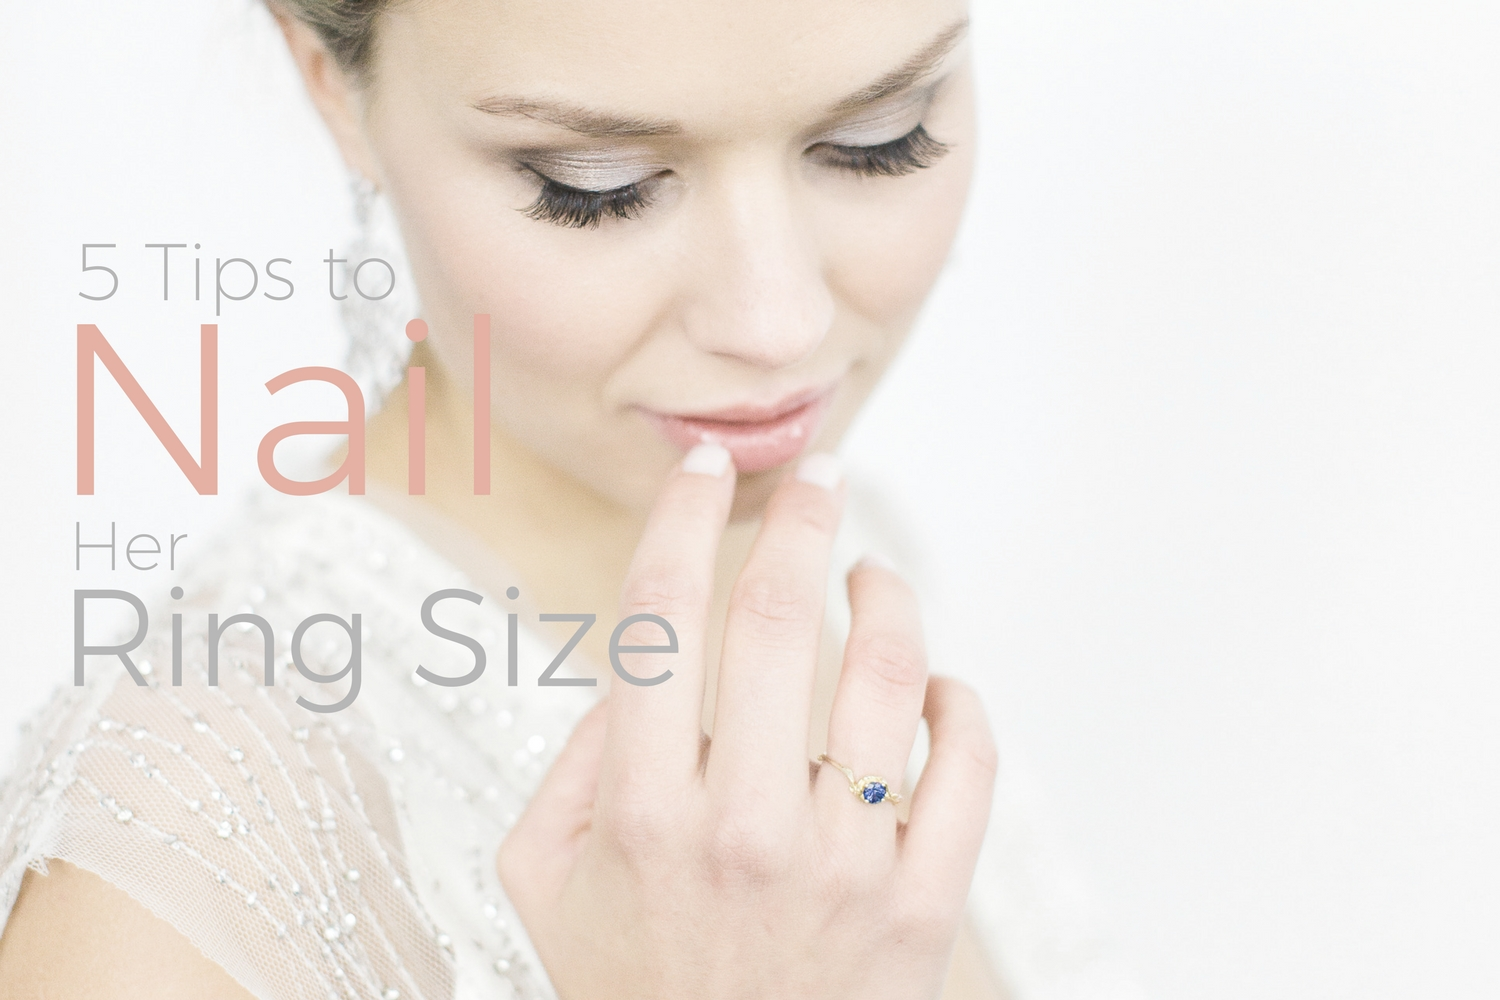 5 Tips to Nailing Her Ring Size